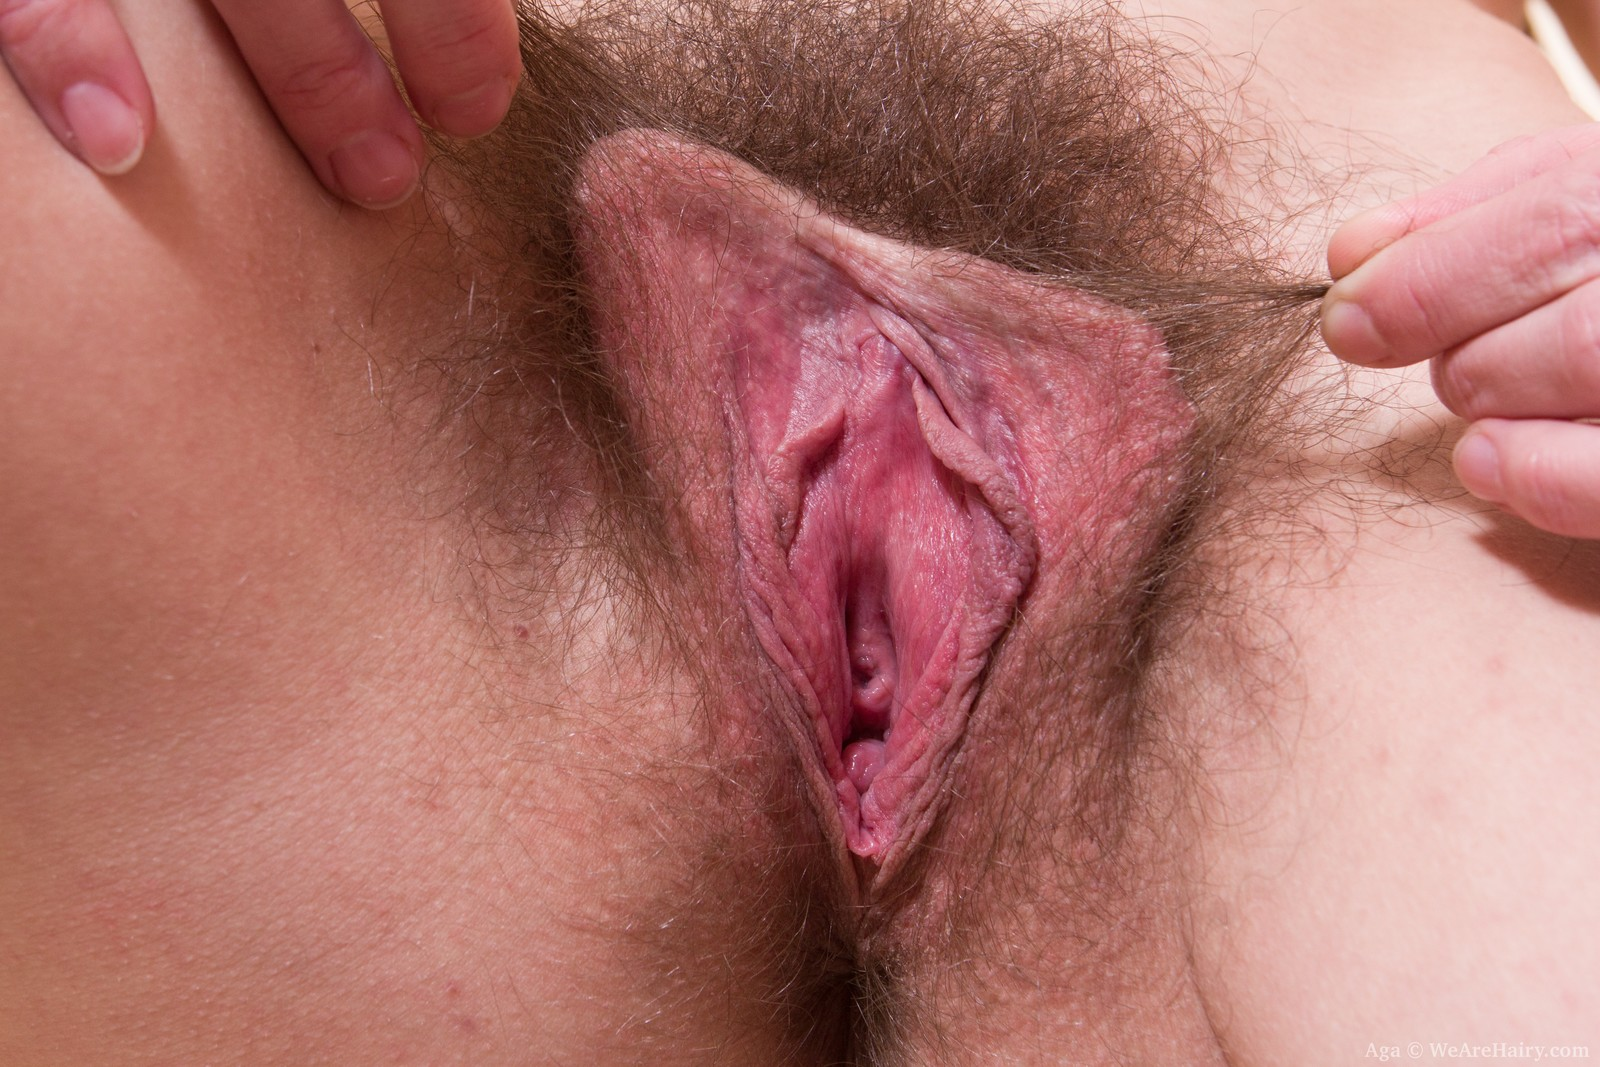 Close Up Of A Vagina